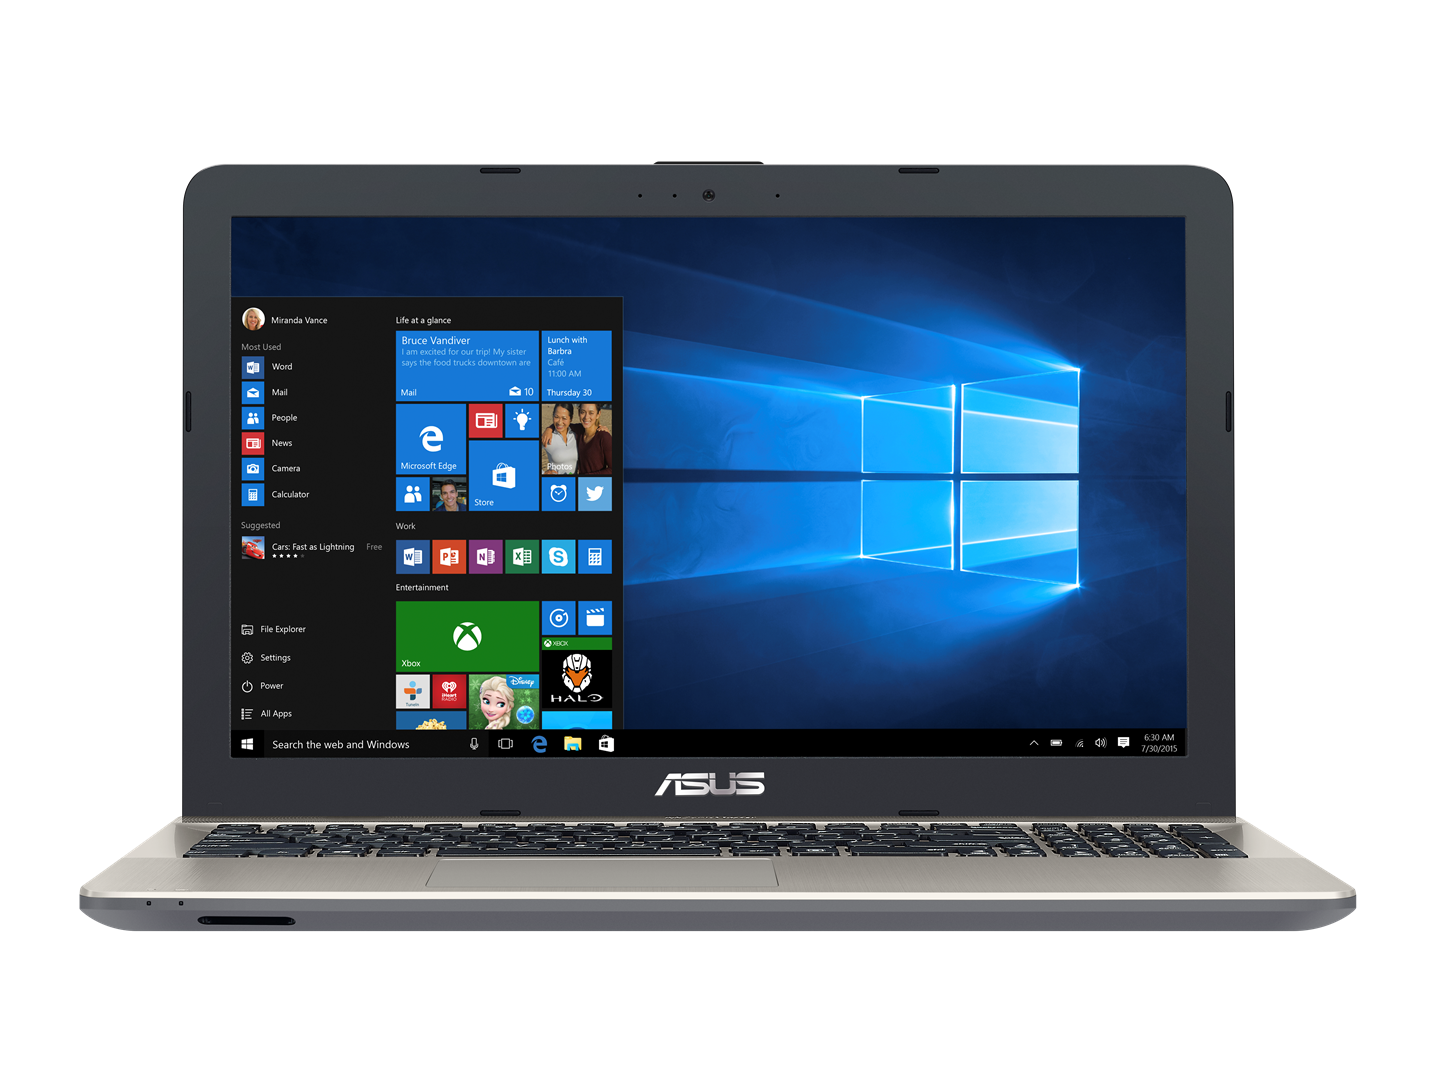 "ASUS X541UJ-GQ438T i5-7200U/4GB/500GB/DVDRW/GeForce 920M/15,6"" HD LED matný/W10 Home/Black/Black&gold"